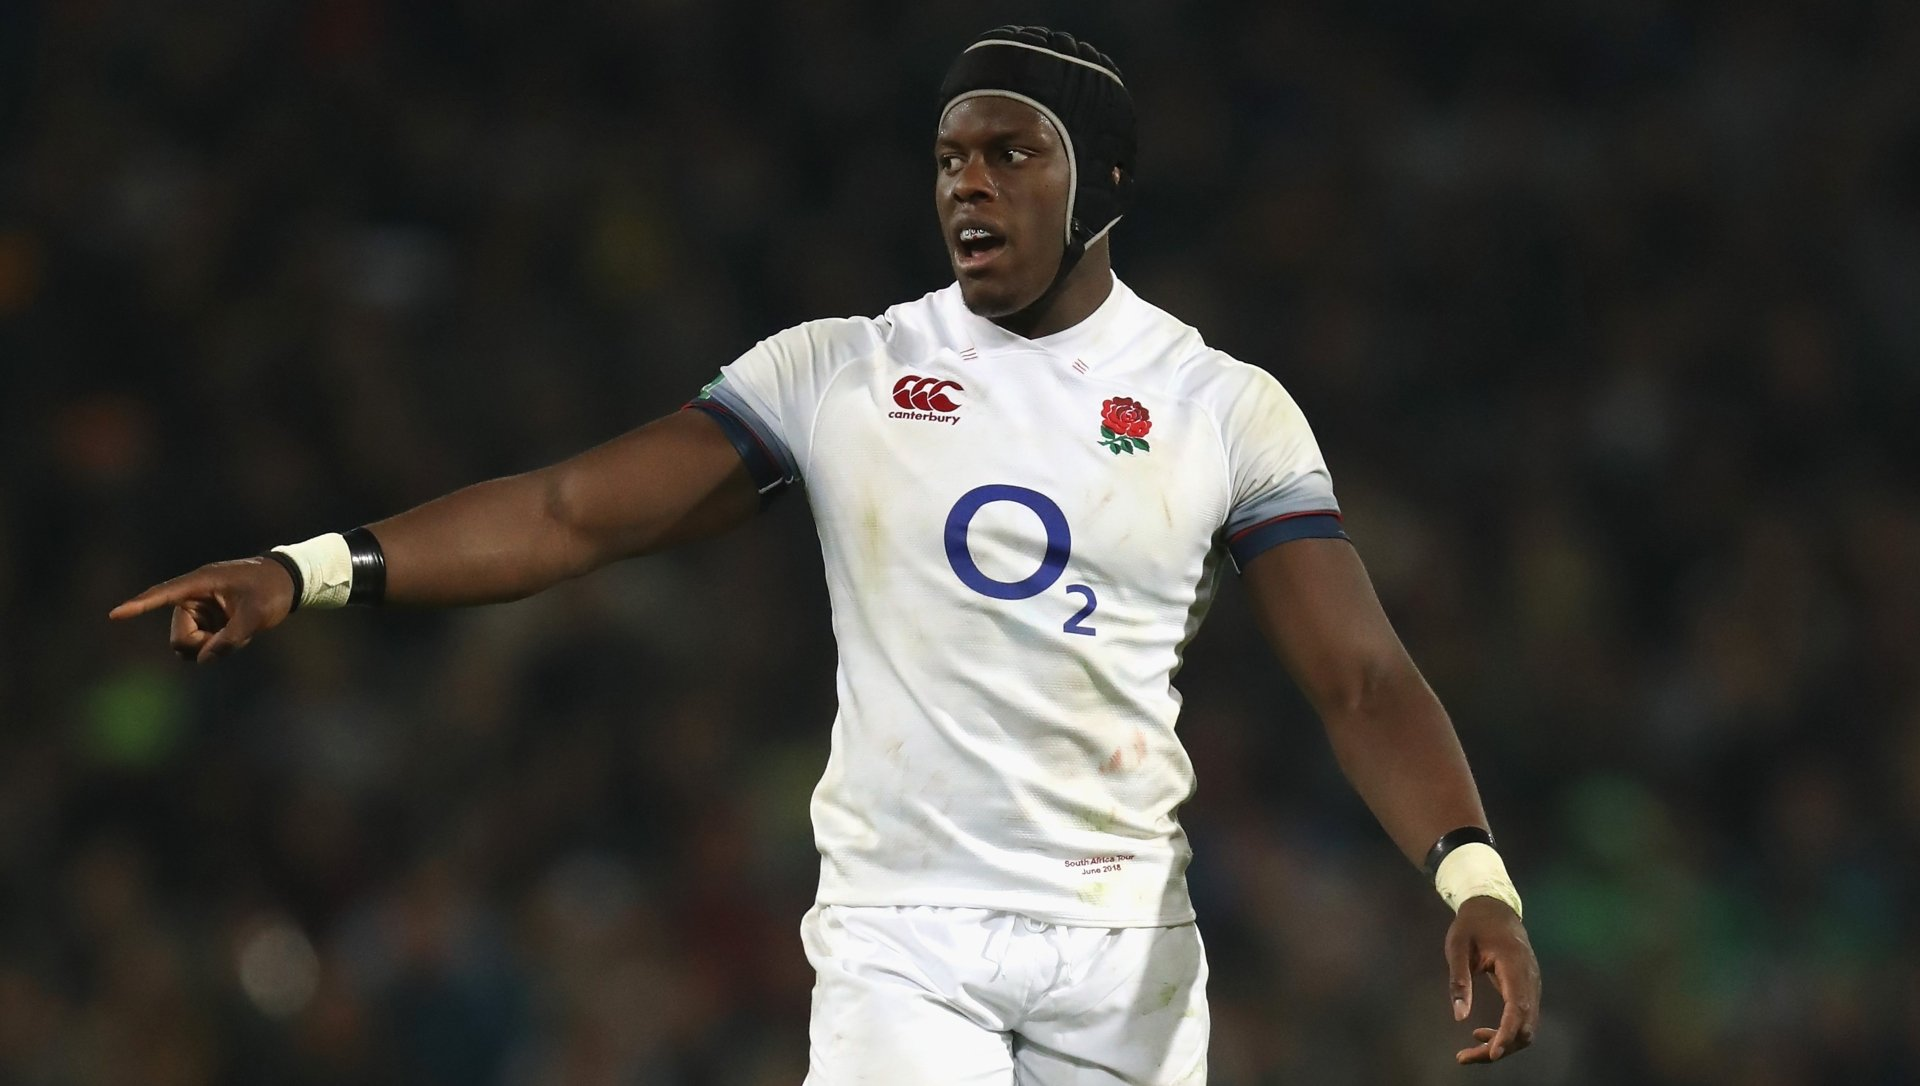 Maro Itoje Rugby Player